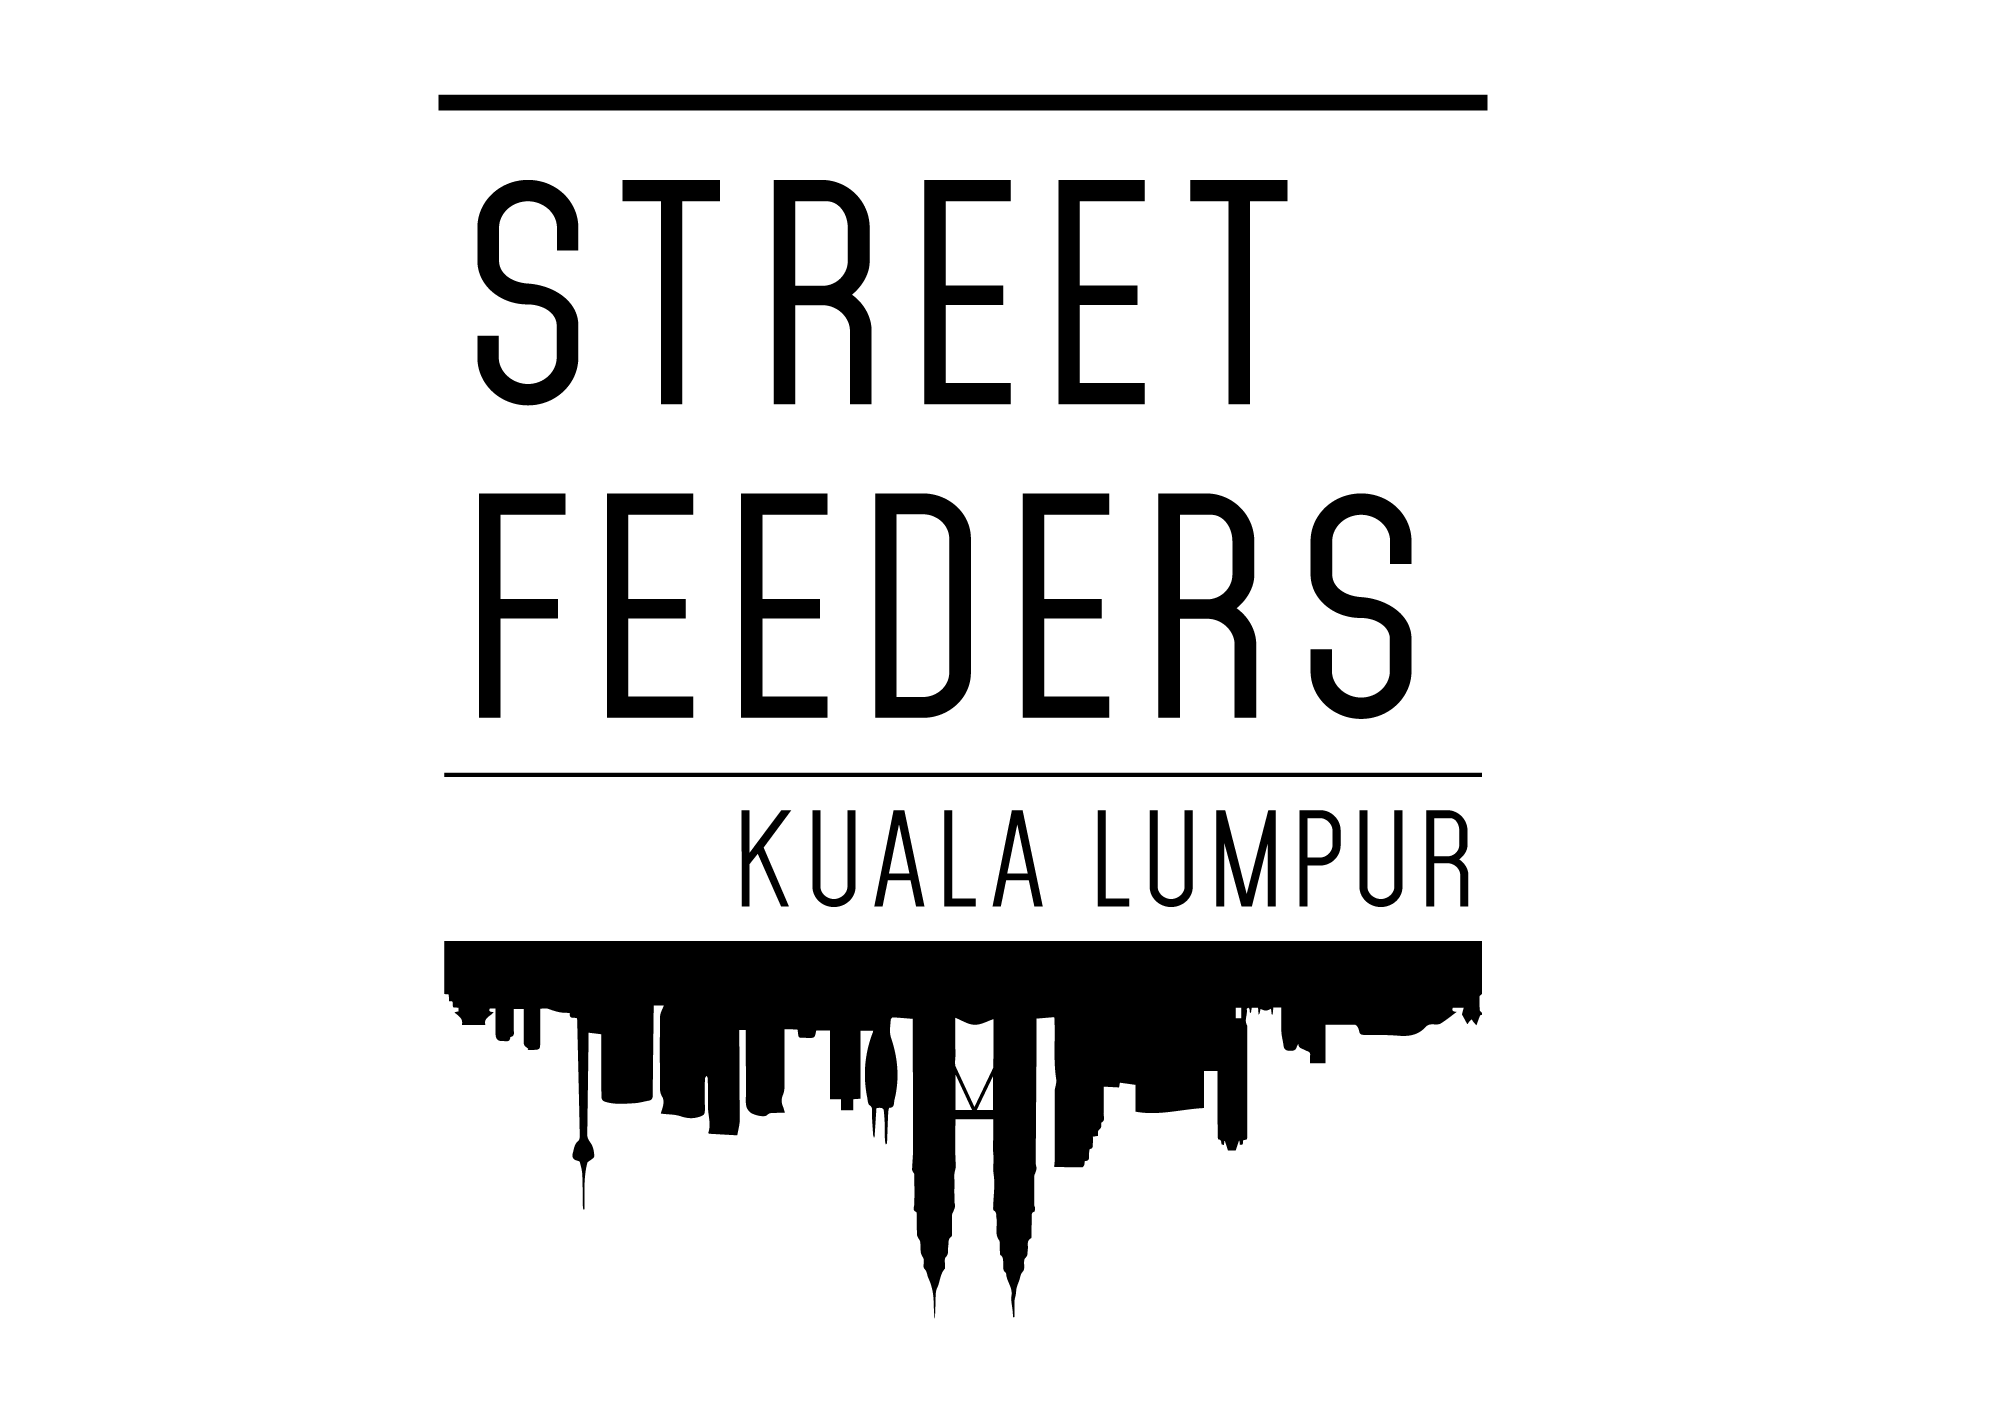 Street Feeders of KL